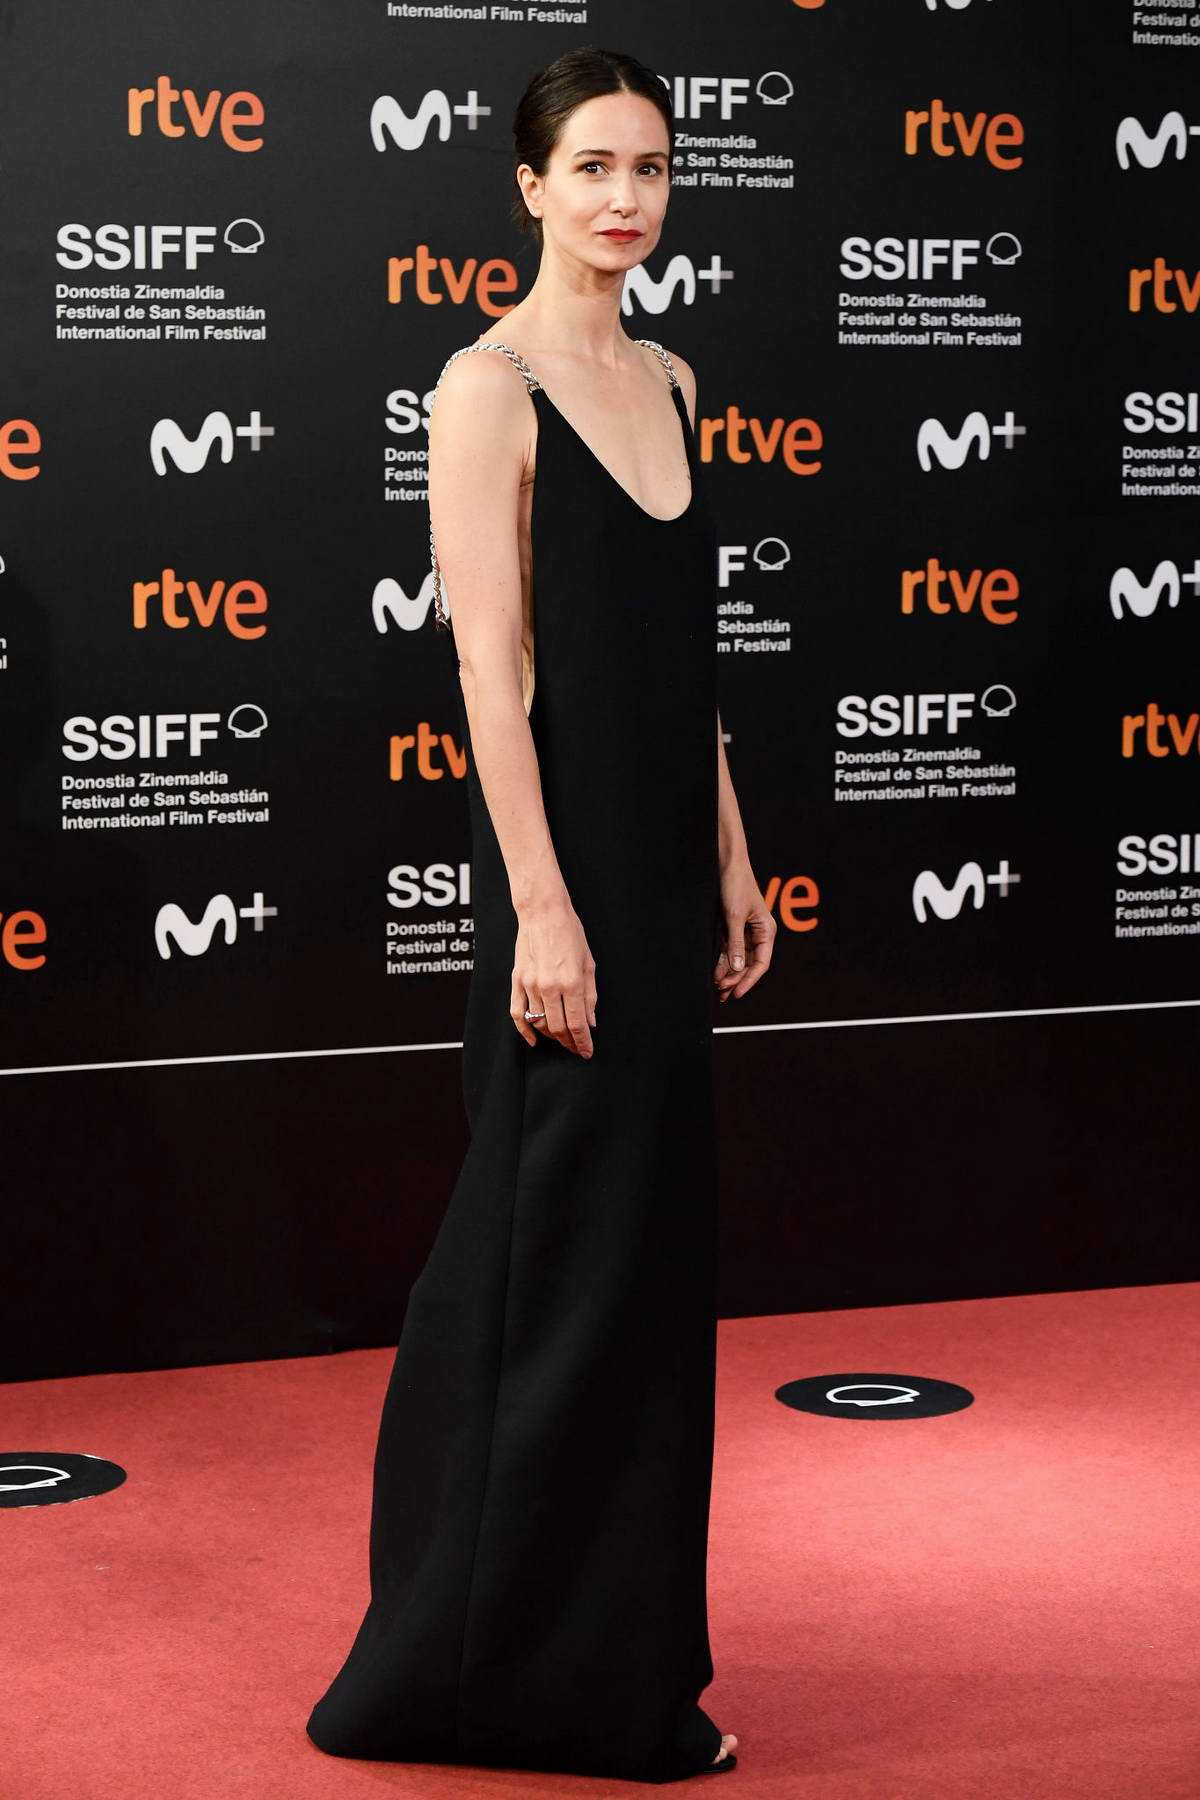 Katherine Waterson attends the Premiere of 'Forgotten We'll Be' during the 68th San Sebastian Film Festival in San Sebastian, Spain